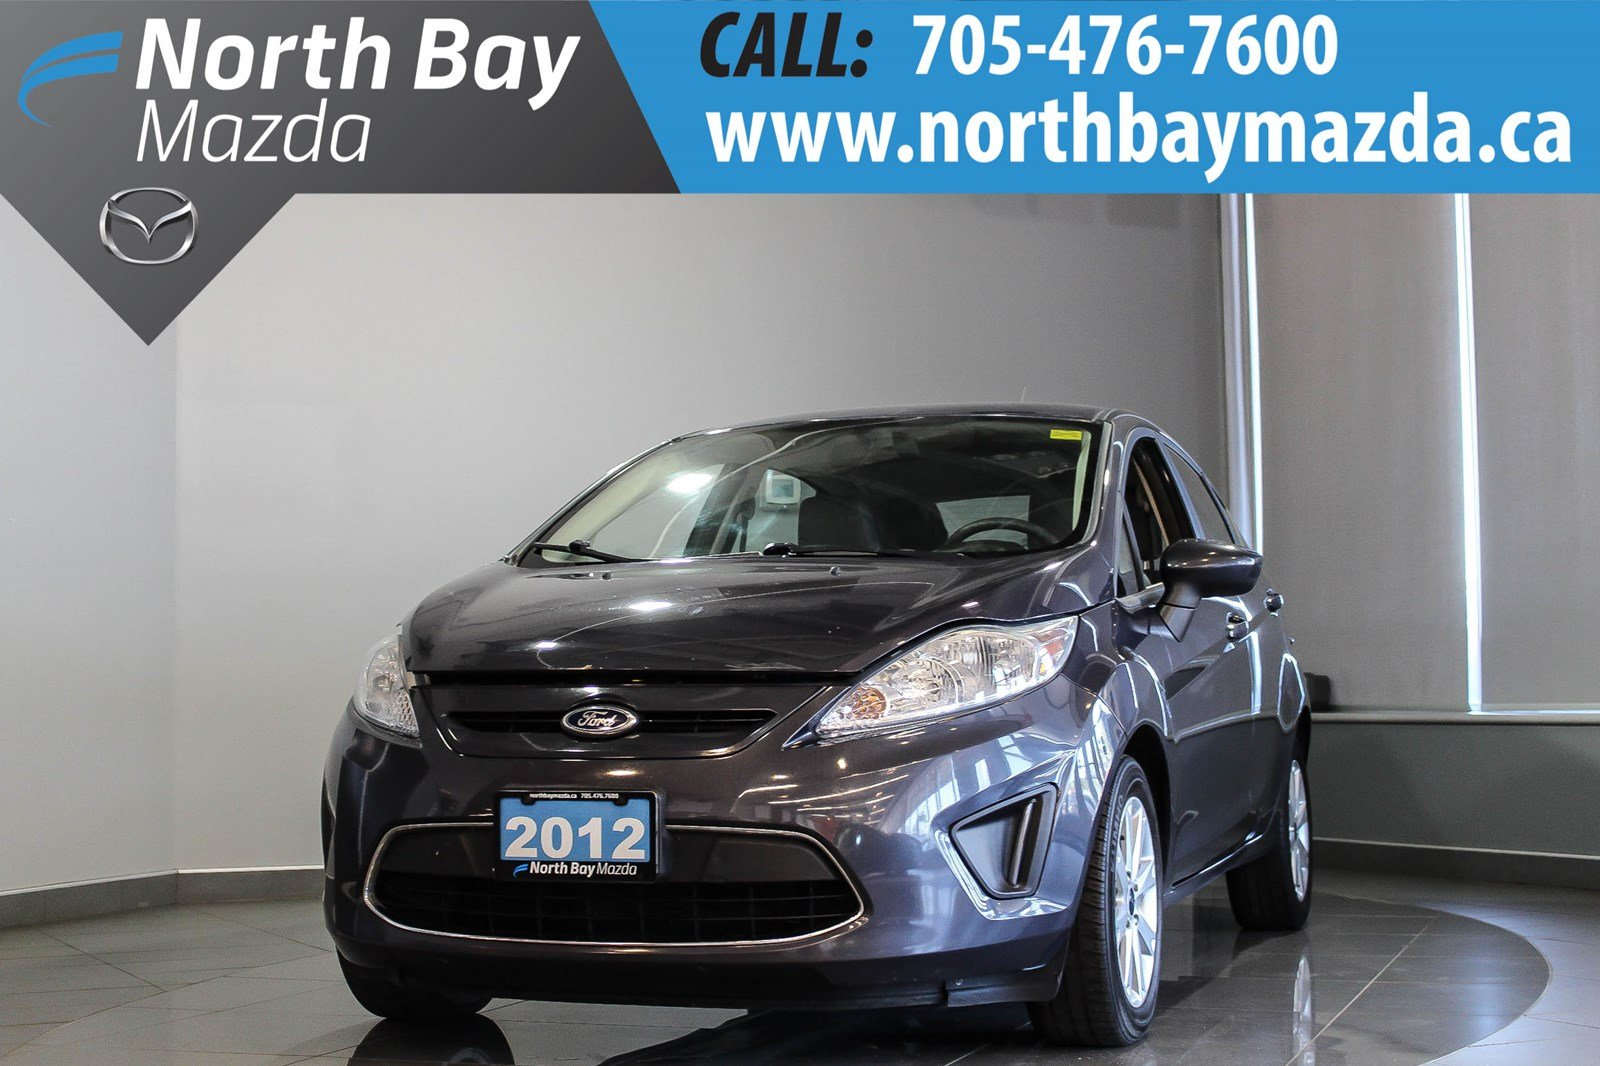 Pre-Owned 2012 Ford Fiesta SE with Heated Seats, Cruise Control